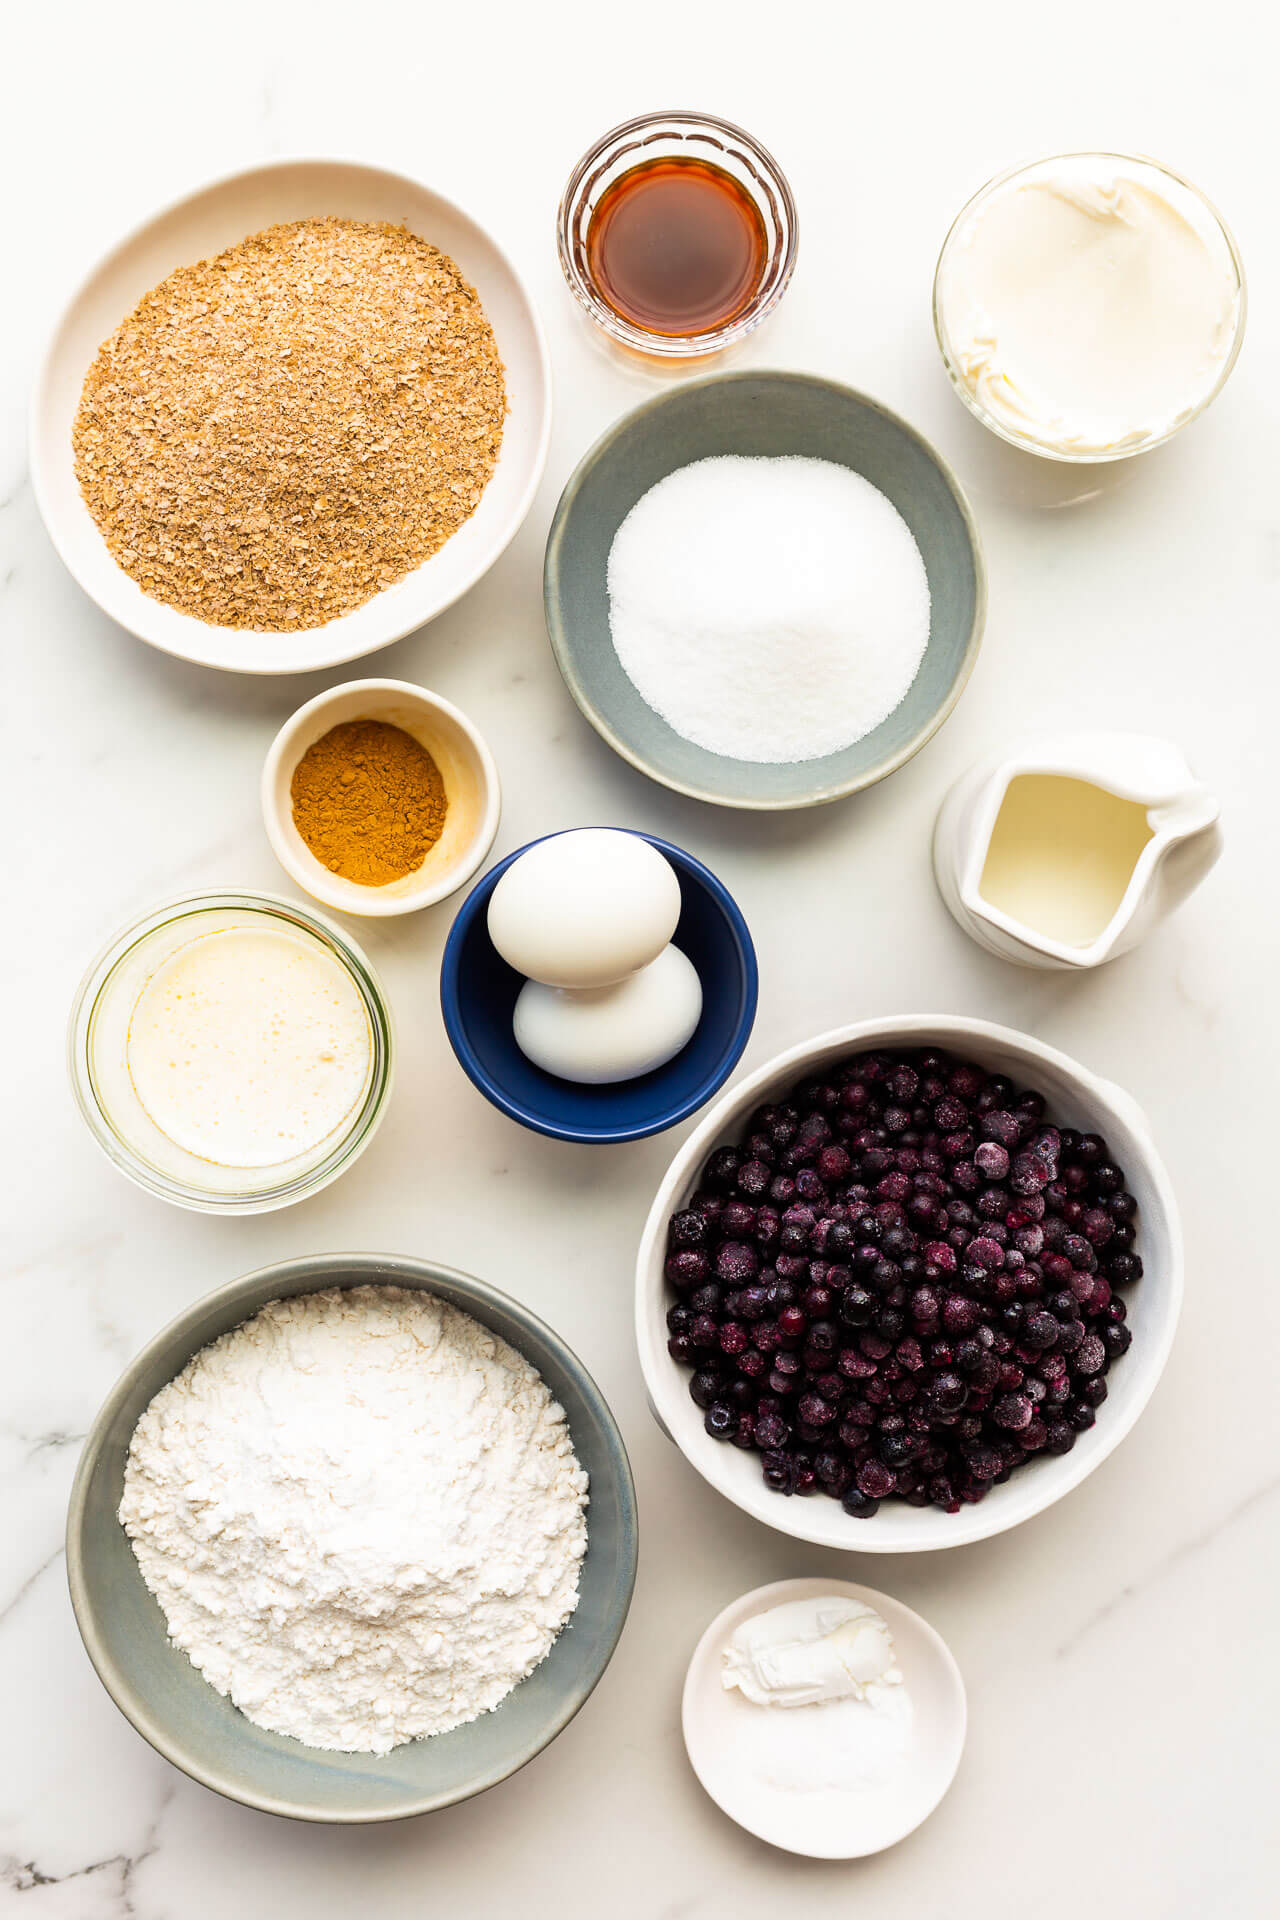 Ingredients to make blueberry bran muffins measured out into bowls, ready for mixing